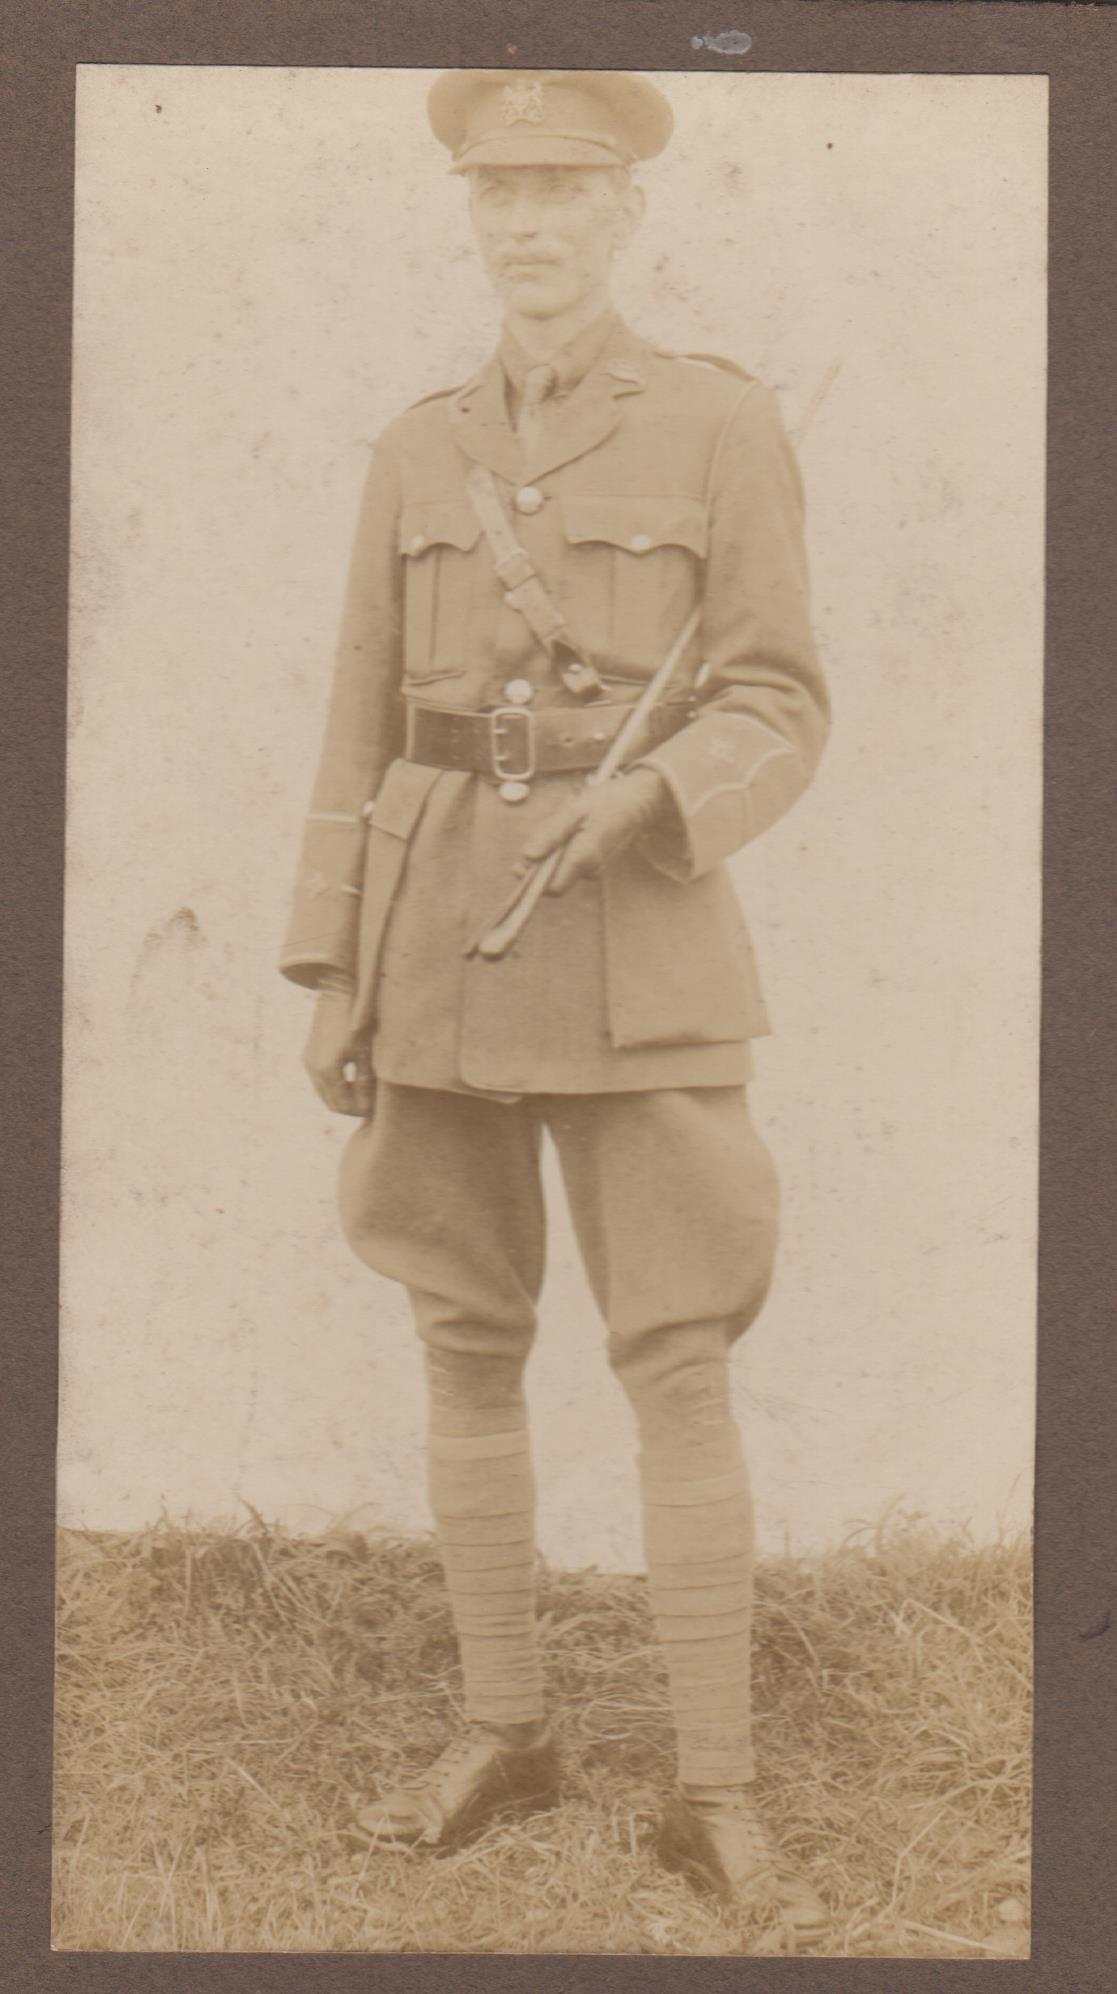 2016-02-01_ben_fuller_in_uniform.jpg